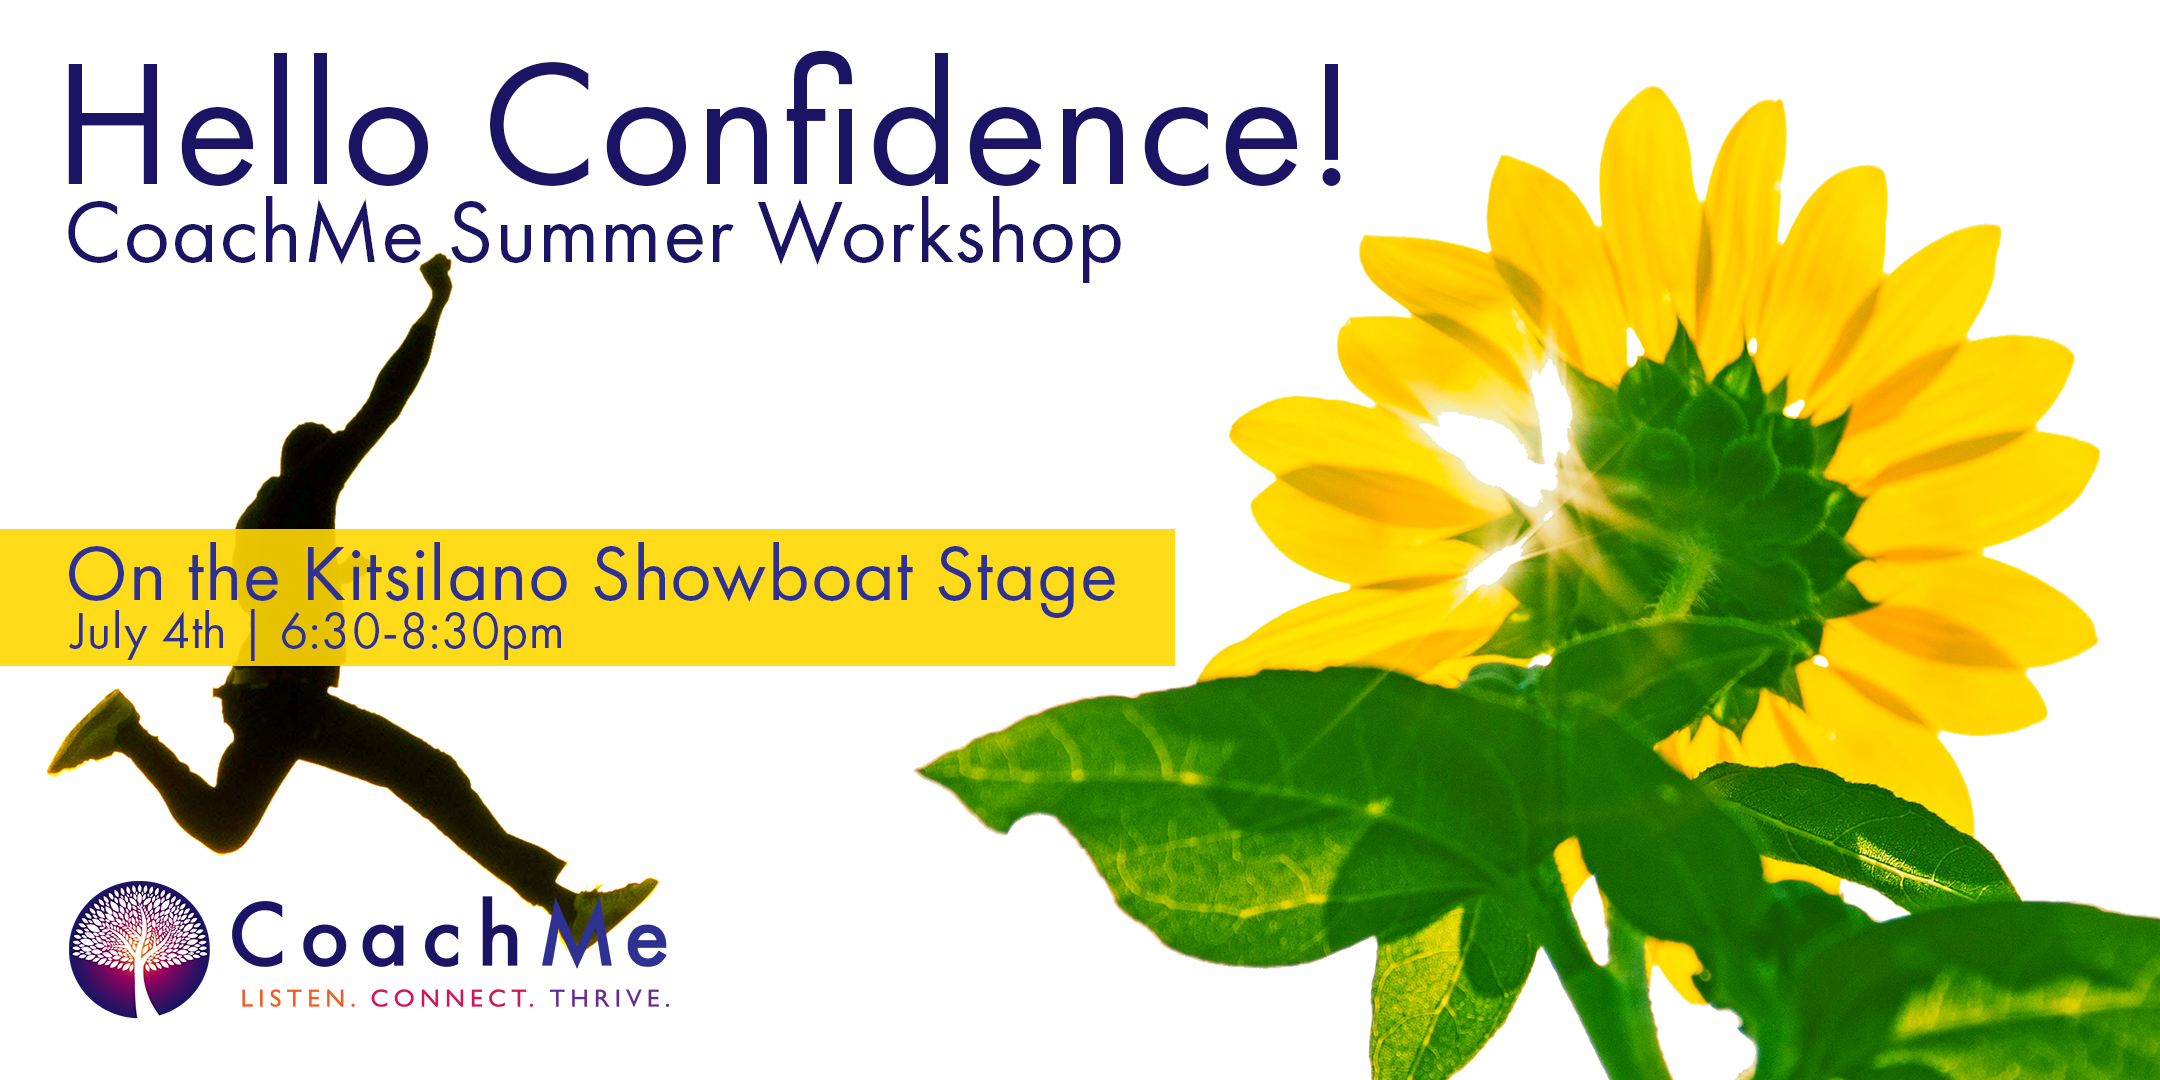 Coaching Workshop in Vancouver - Coaching Event Hello Confidence - CoachMe Vancouver